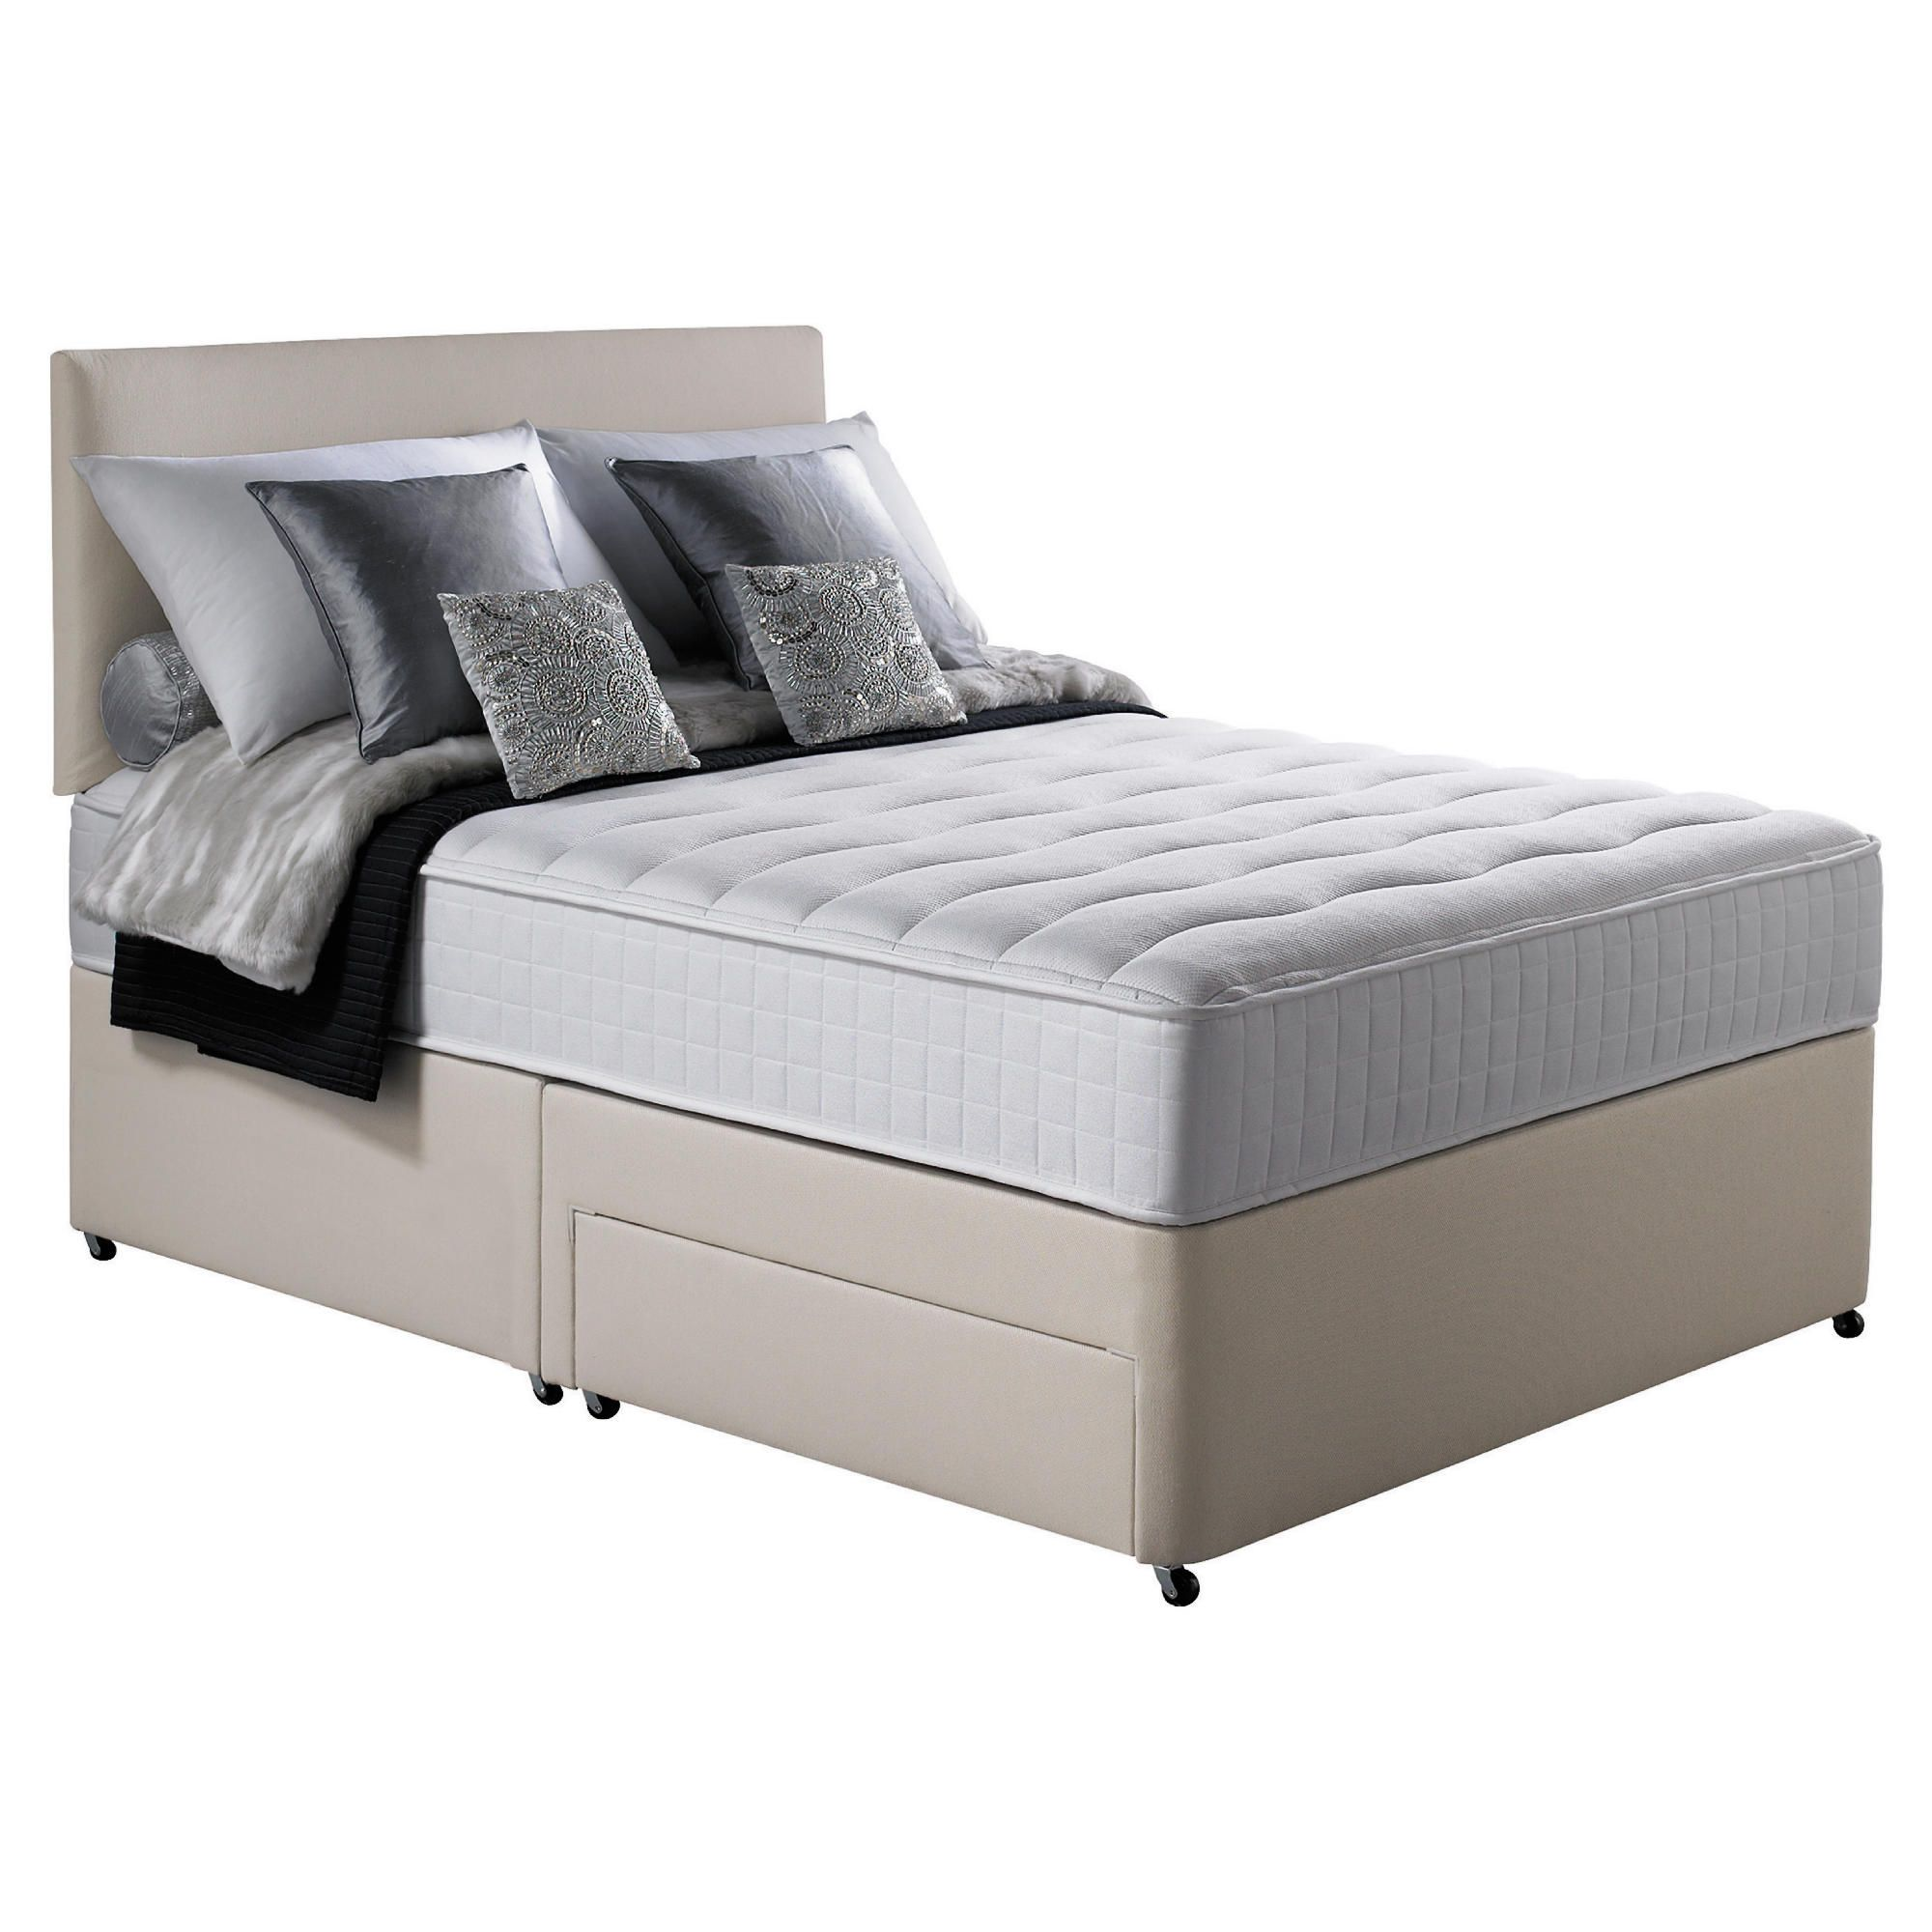 Tescos direct uk make big savings today at tescos direct for Memory foam double divan bed sale